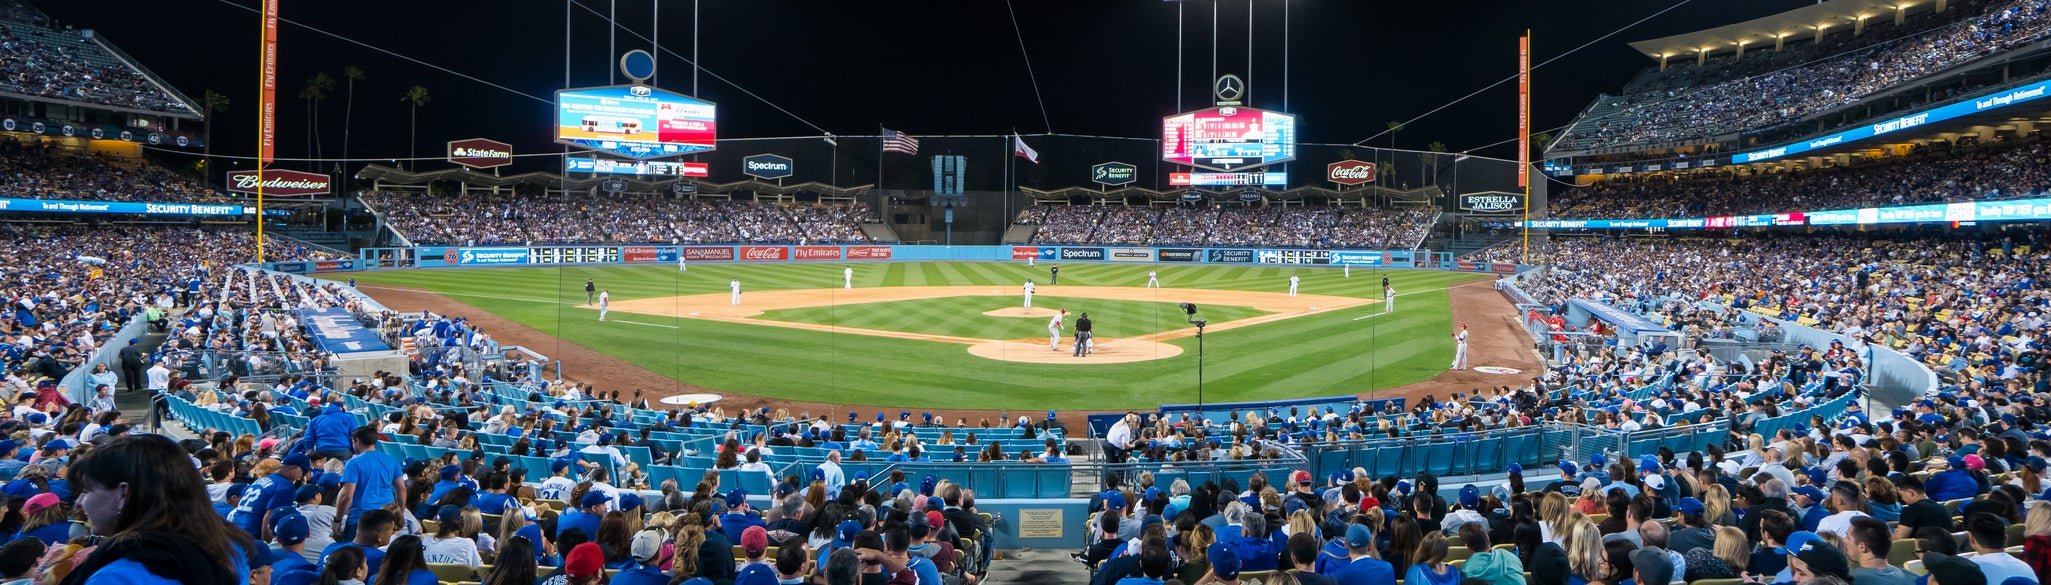 Seat view from Field Box MVP